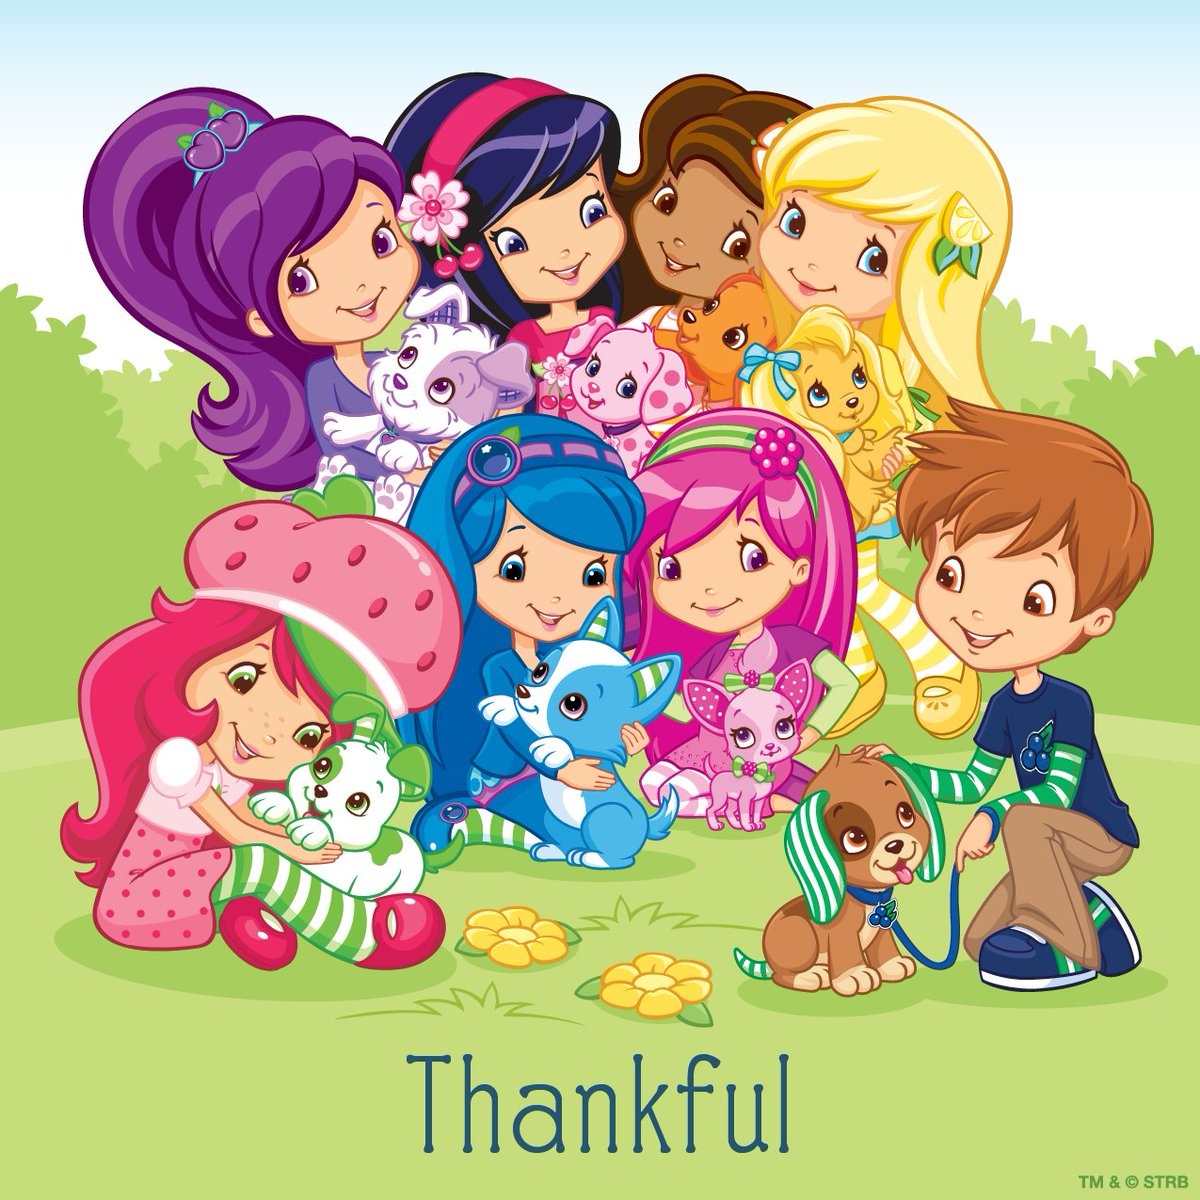 Strawberry Shortcake On Twitter Thankful For My Friends And